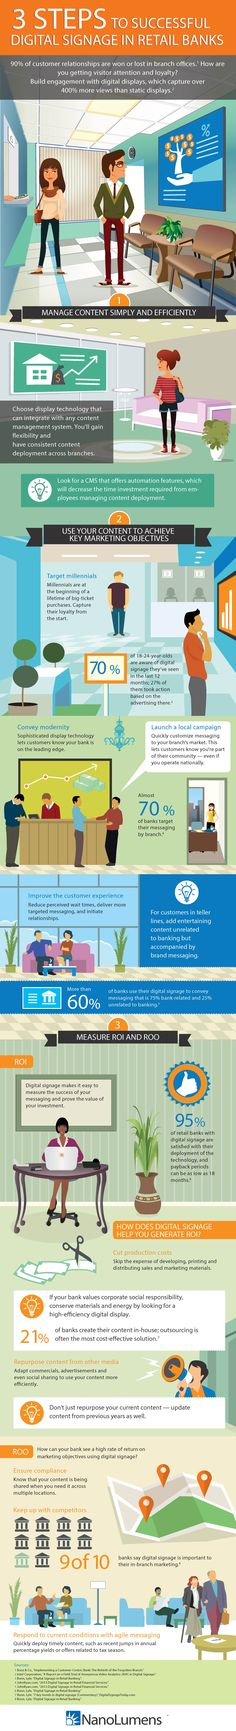 STEPS TO DEPLOY A SUCCESSFUL DIGITAL SIGNAGE SOLUTIONS IN RETAIL BANKS #digitalsignage